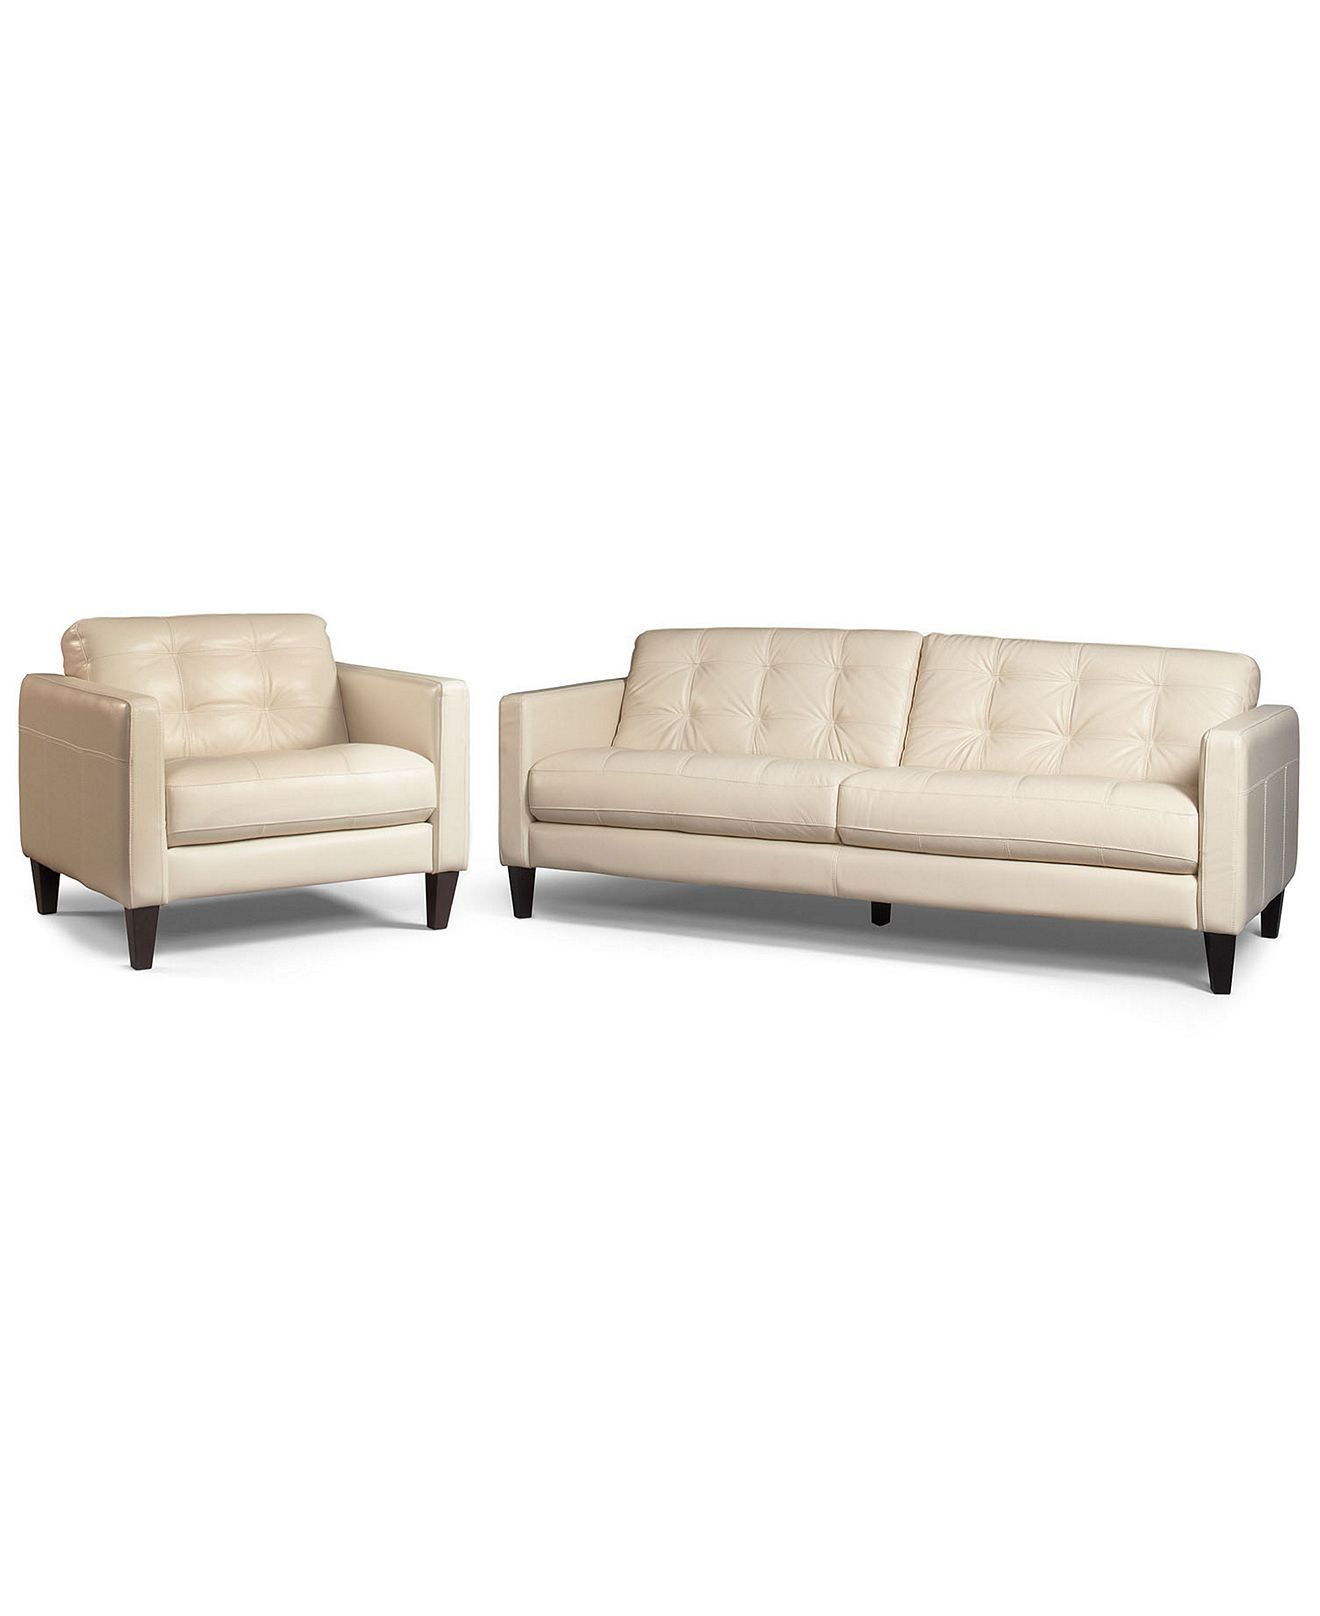 Milan 2 Piece Leather Sofa Set And Chair Couches